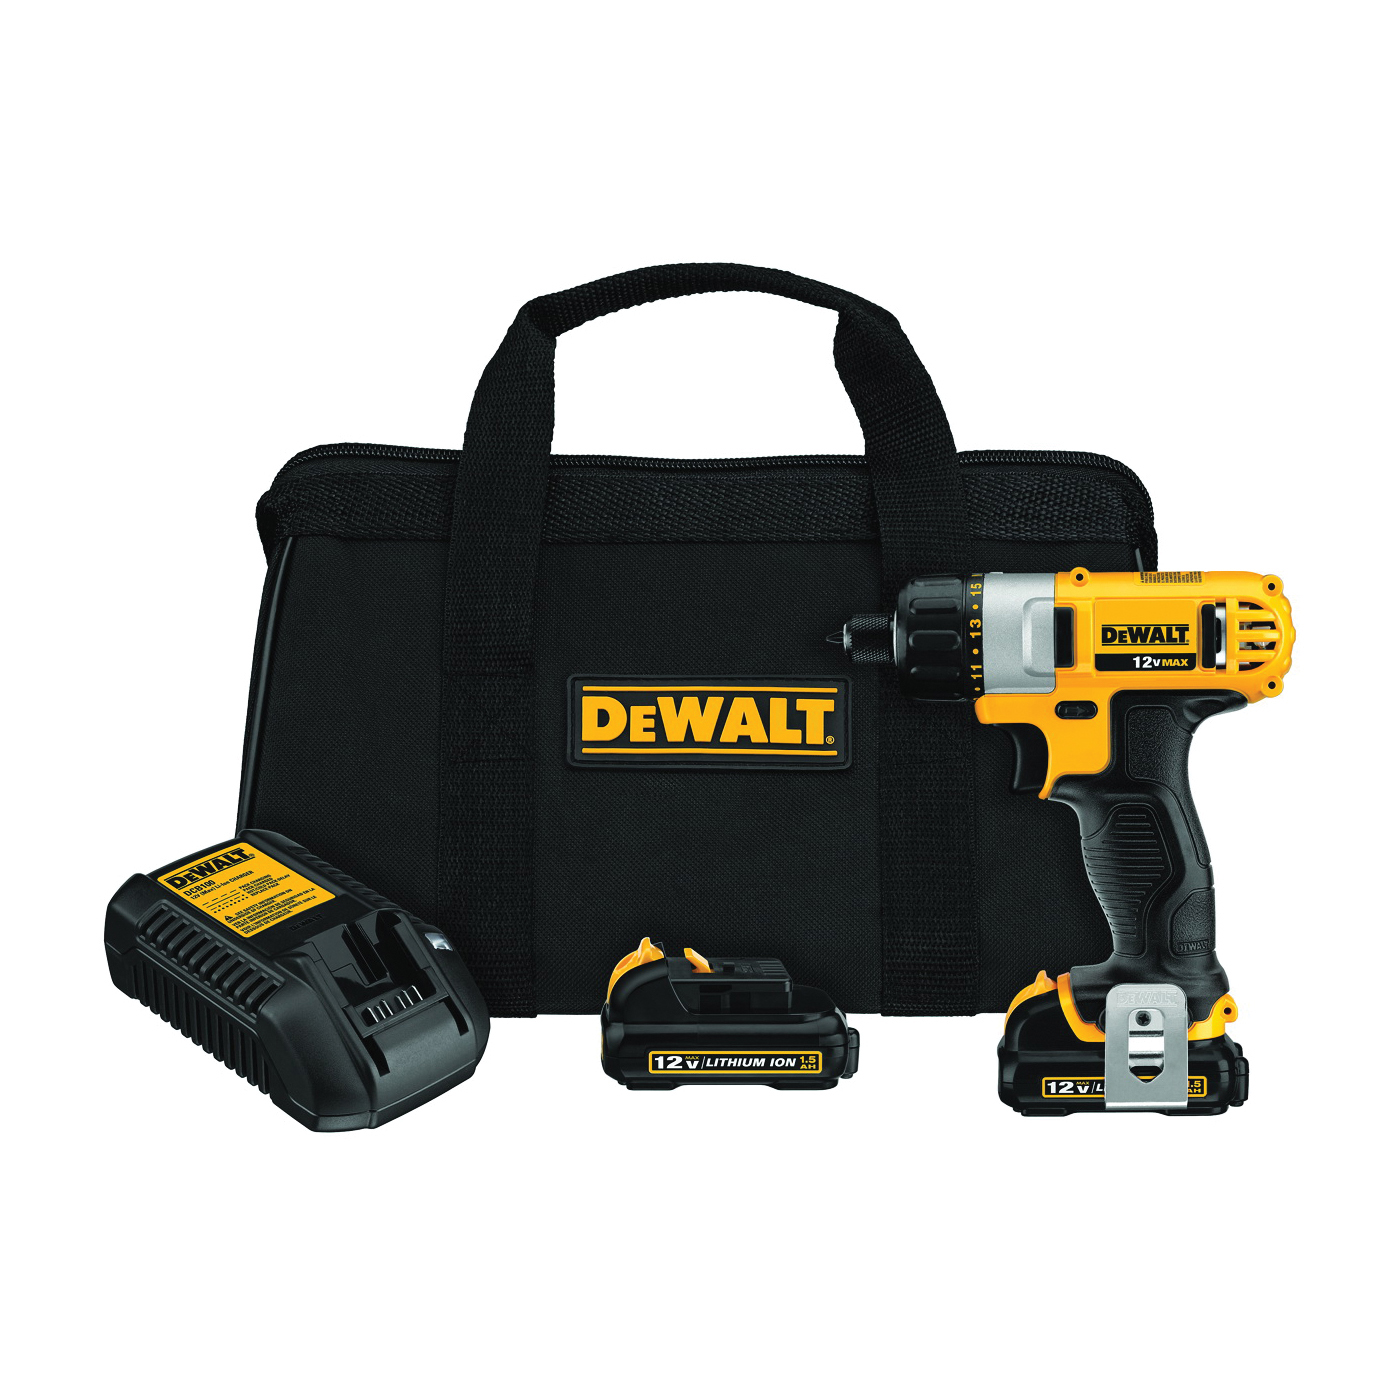 Picture of DeWALT DCF610S2 Screwdriver Kit, Kit, 12 V Battery, 1.3 Ah, 1/4 in Chuck, Keyless Chuck, 0 to 1050 rpm Speed